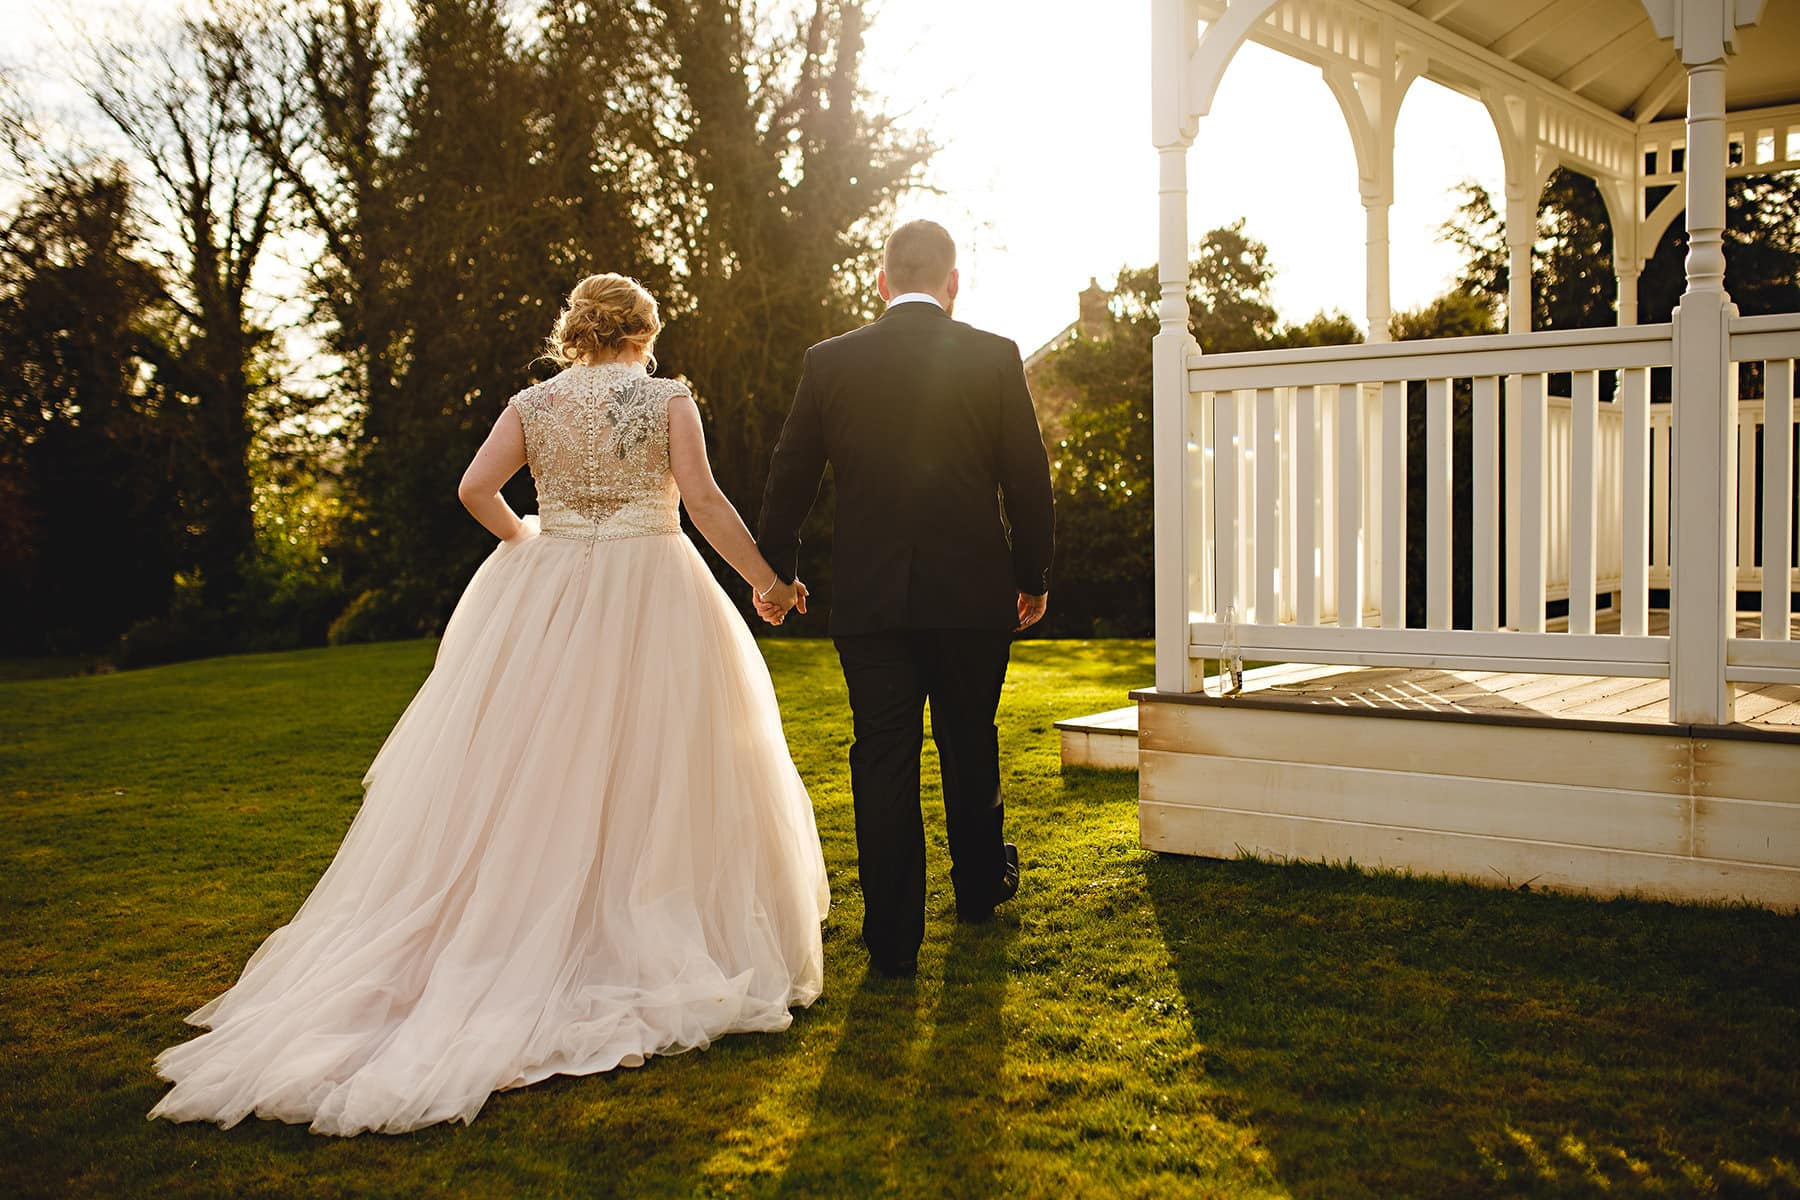 The bride and groom walking into the sun at The Old Vicarage in Southwell